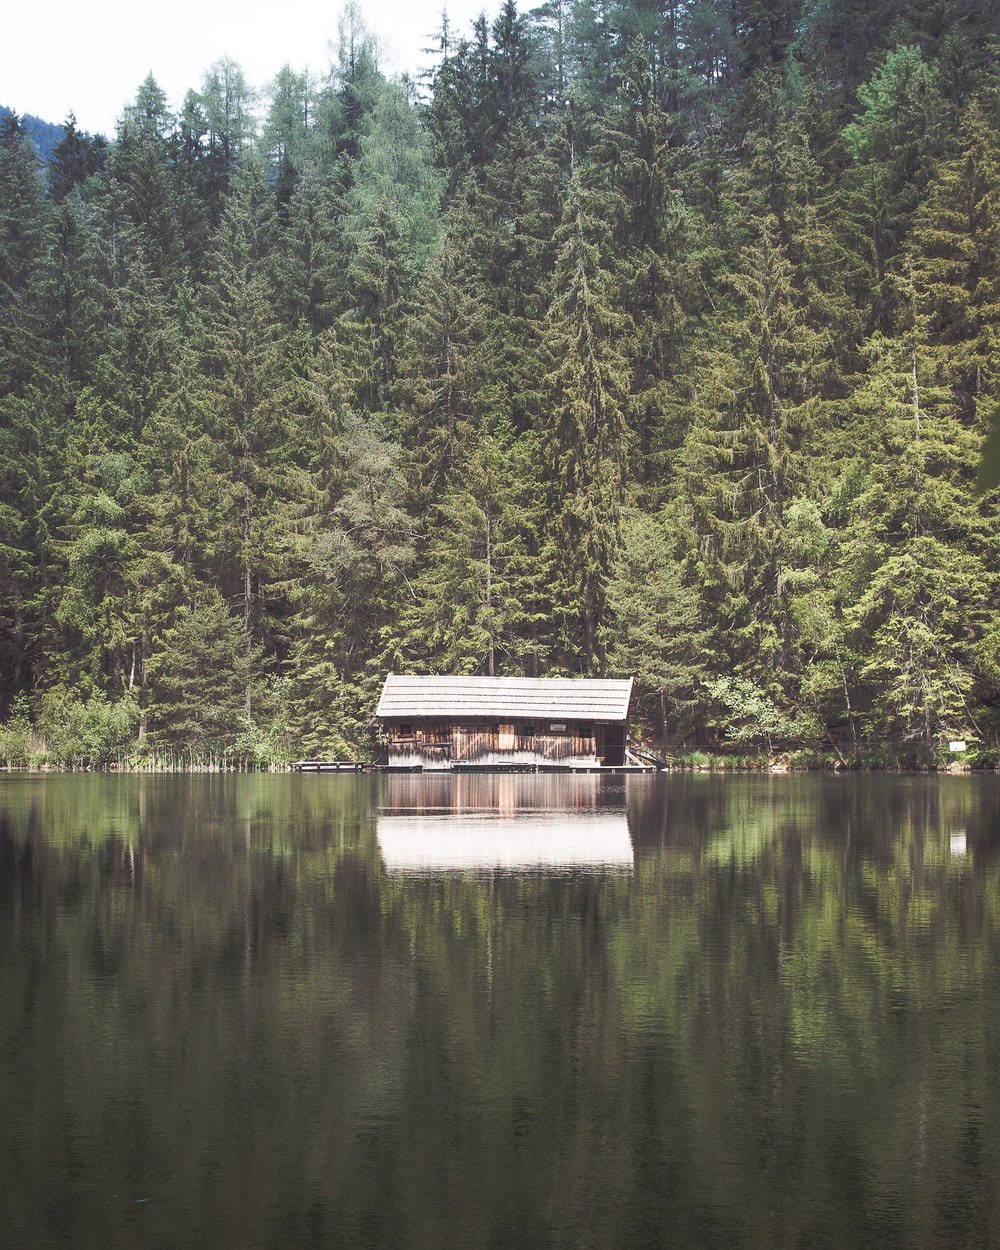 landscape photography of shed near body of water and trees